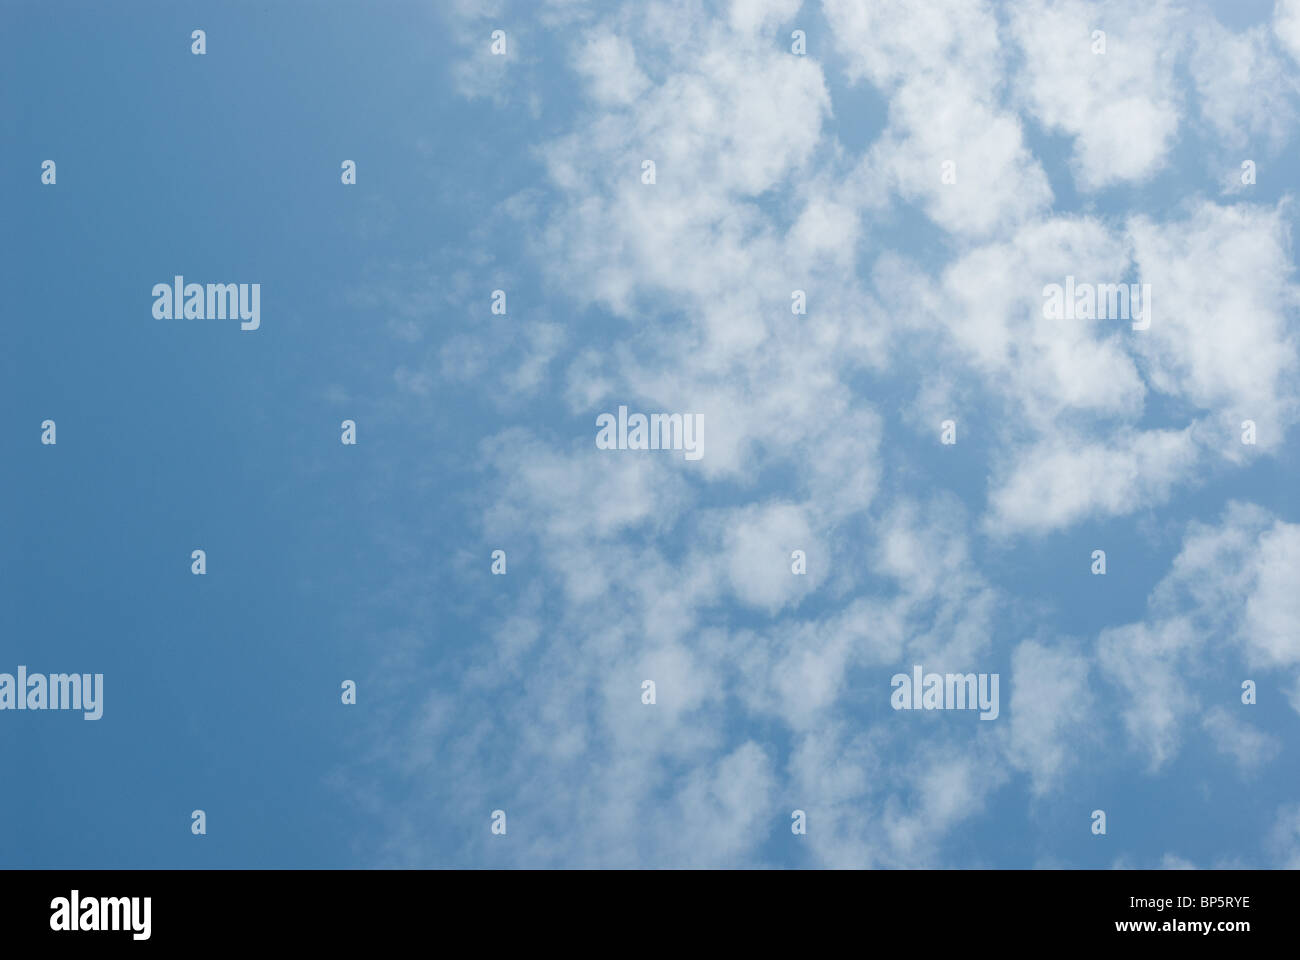 Blue sky and fluffy clouds - Stock Image